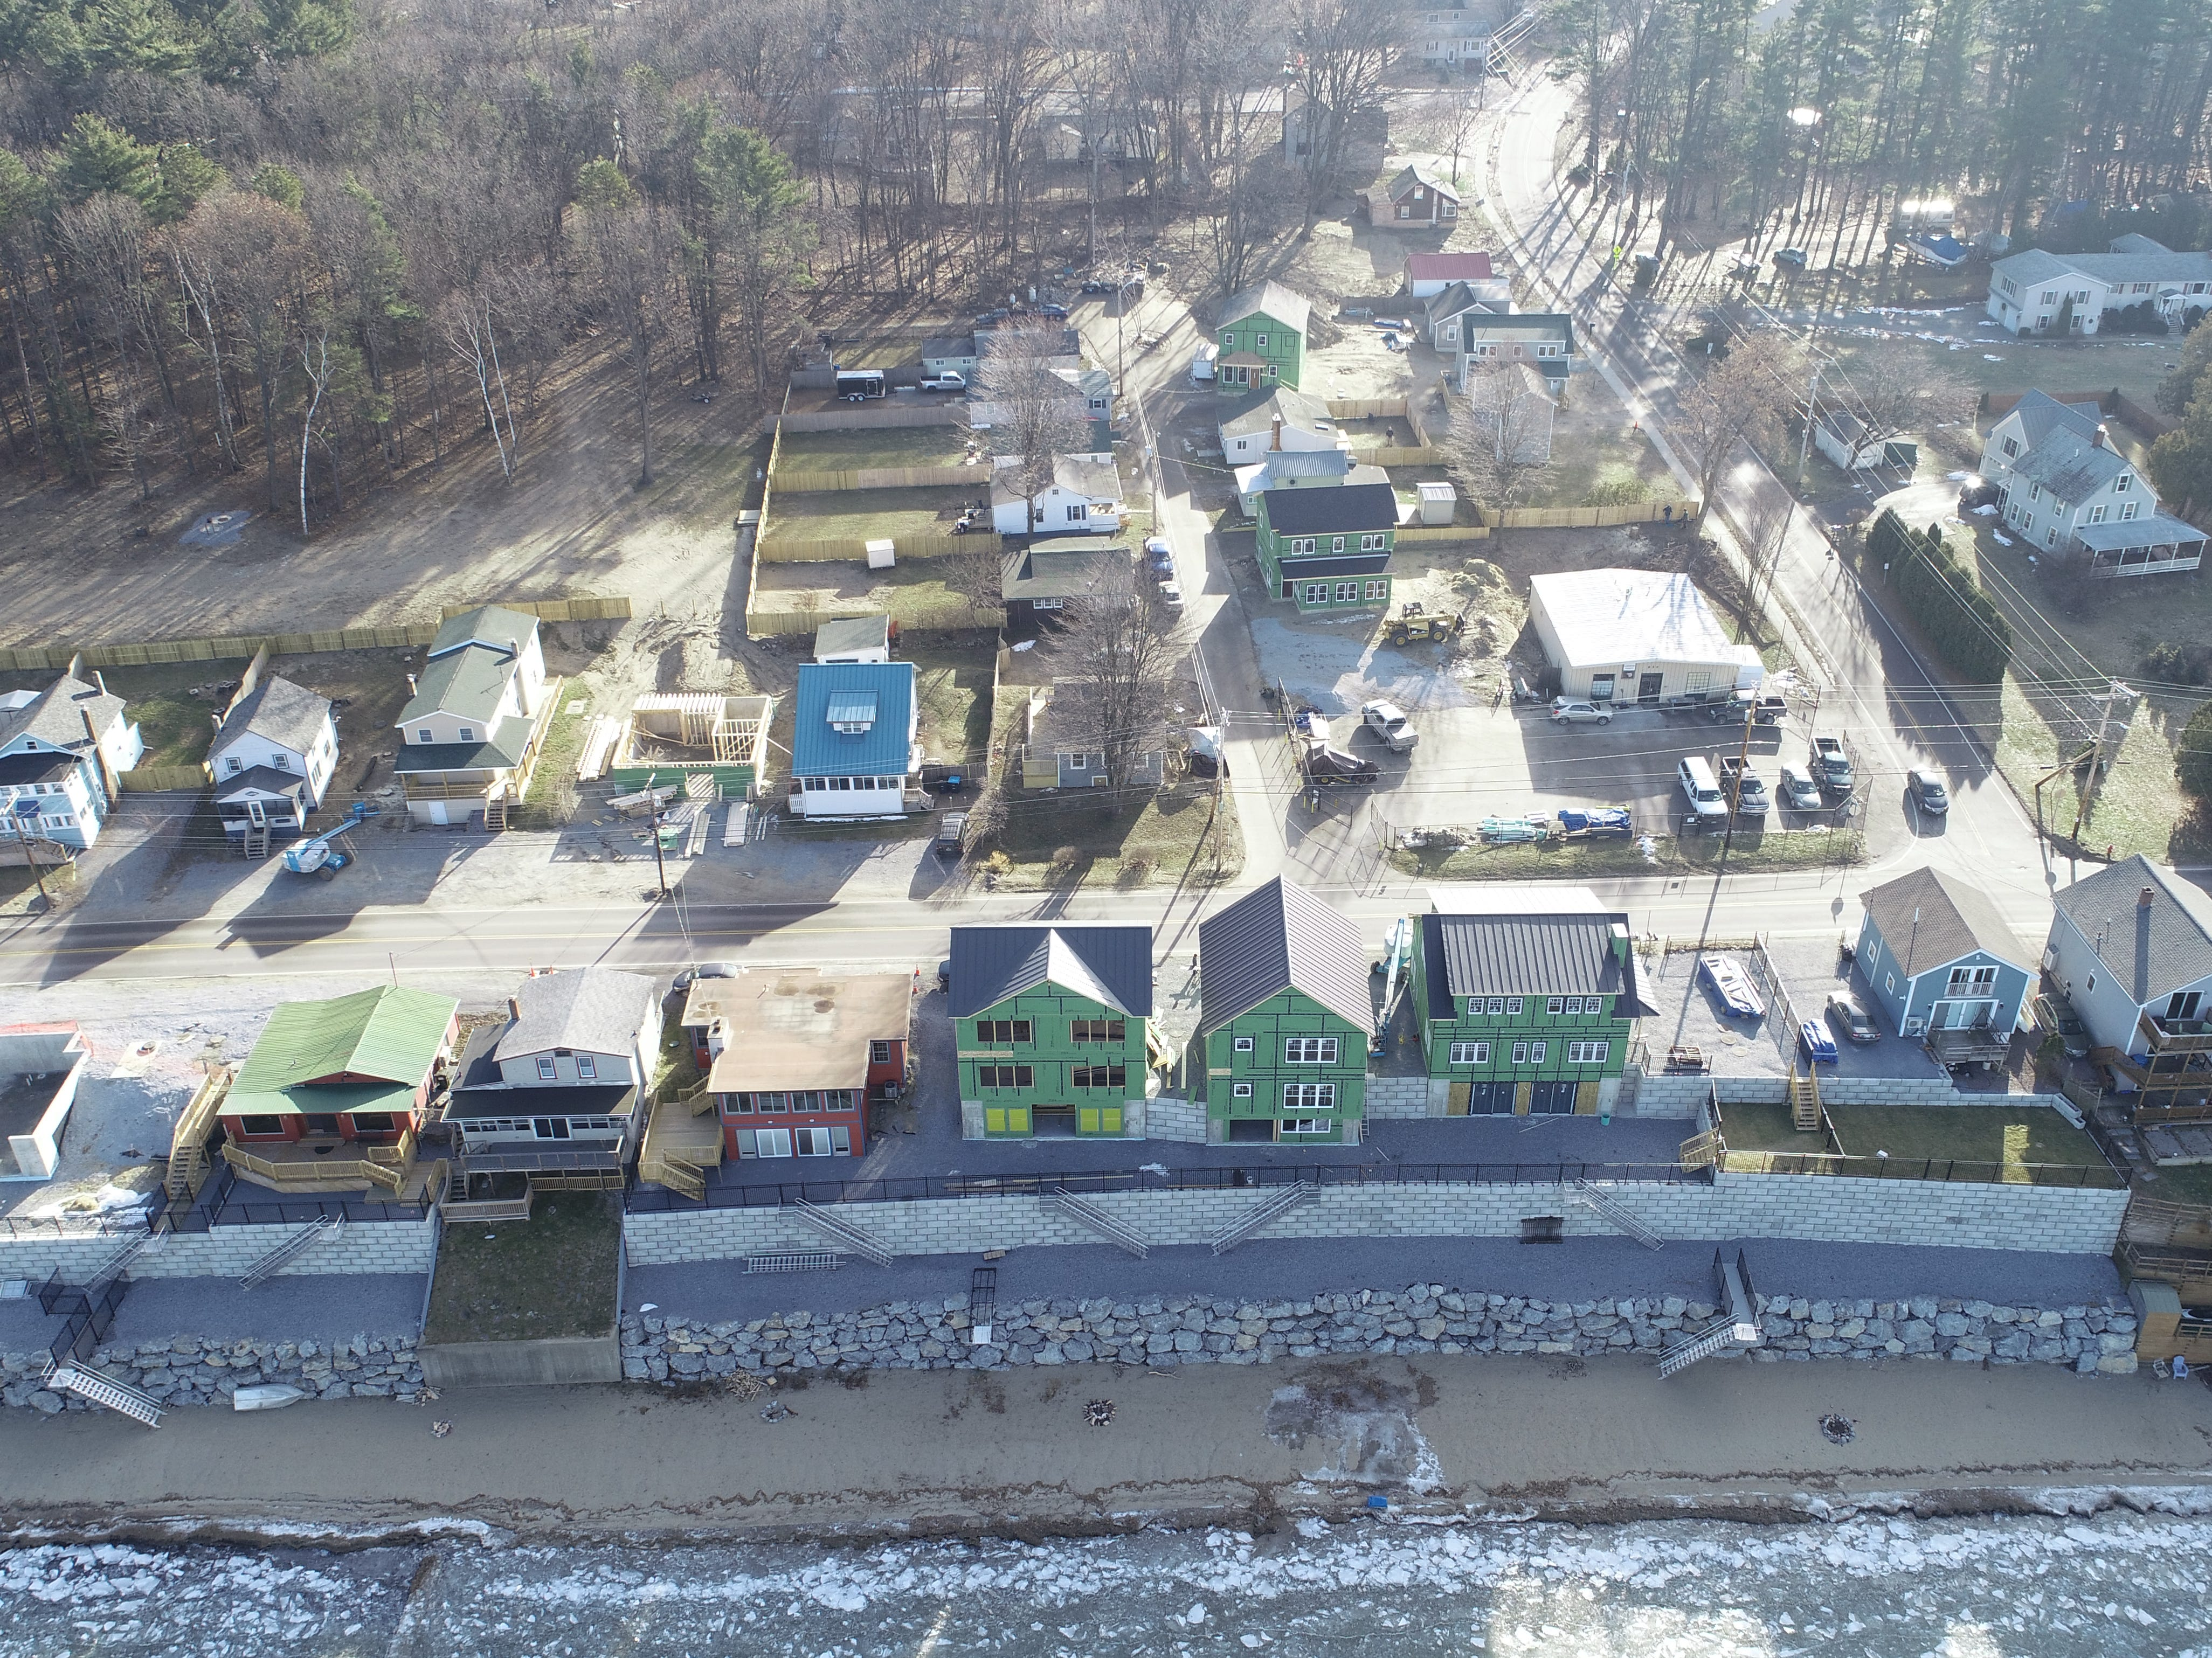 Homes are constructed along East Lakeshore Drive in Colchester, as viewed from a drone above Malletts Bay on Dec. 20, 2019.